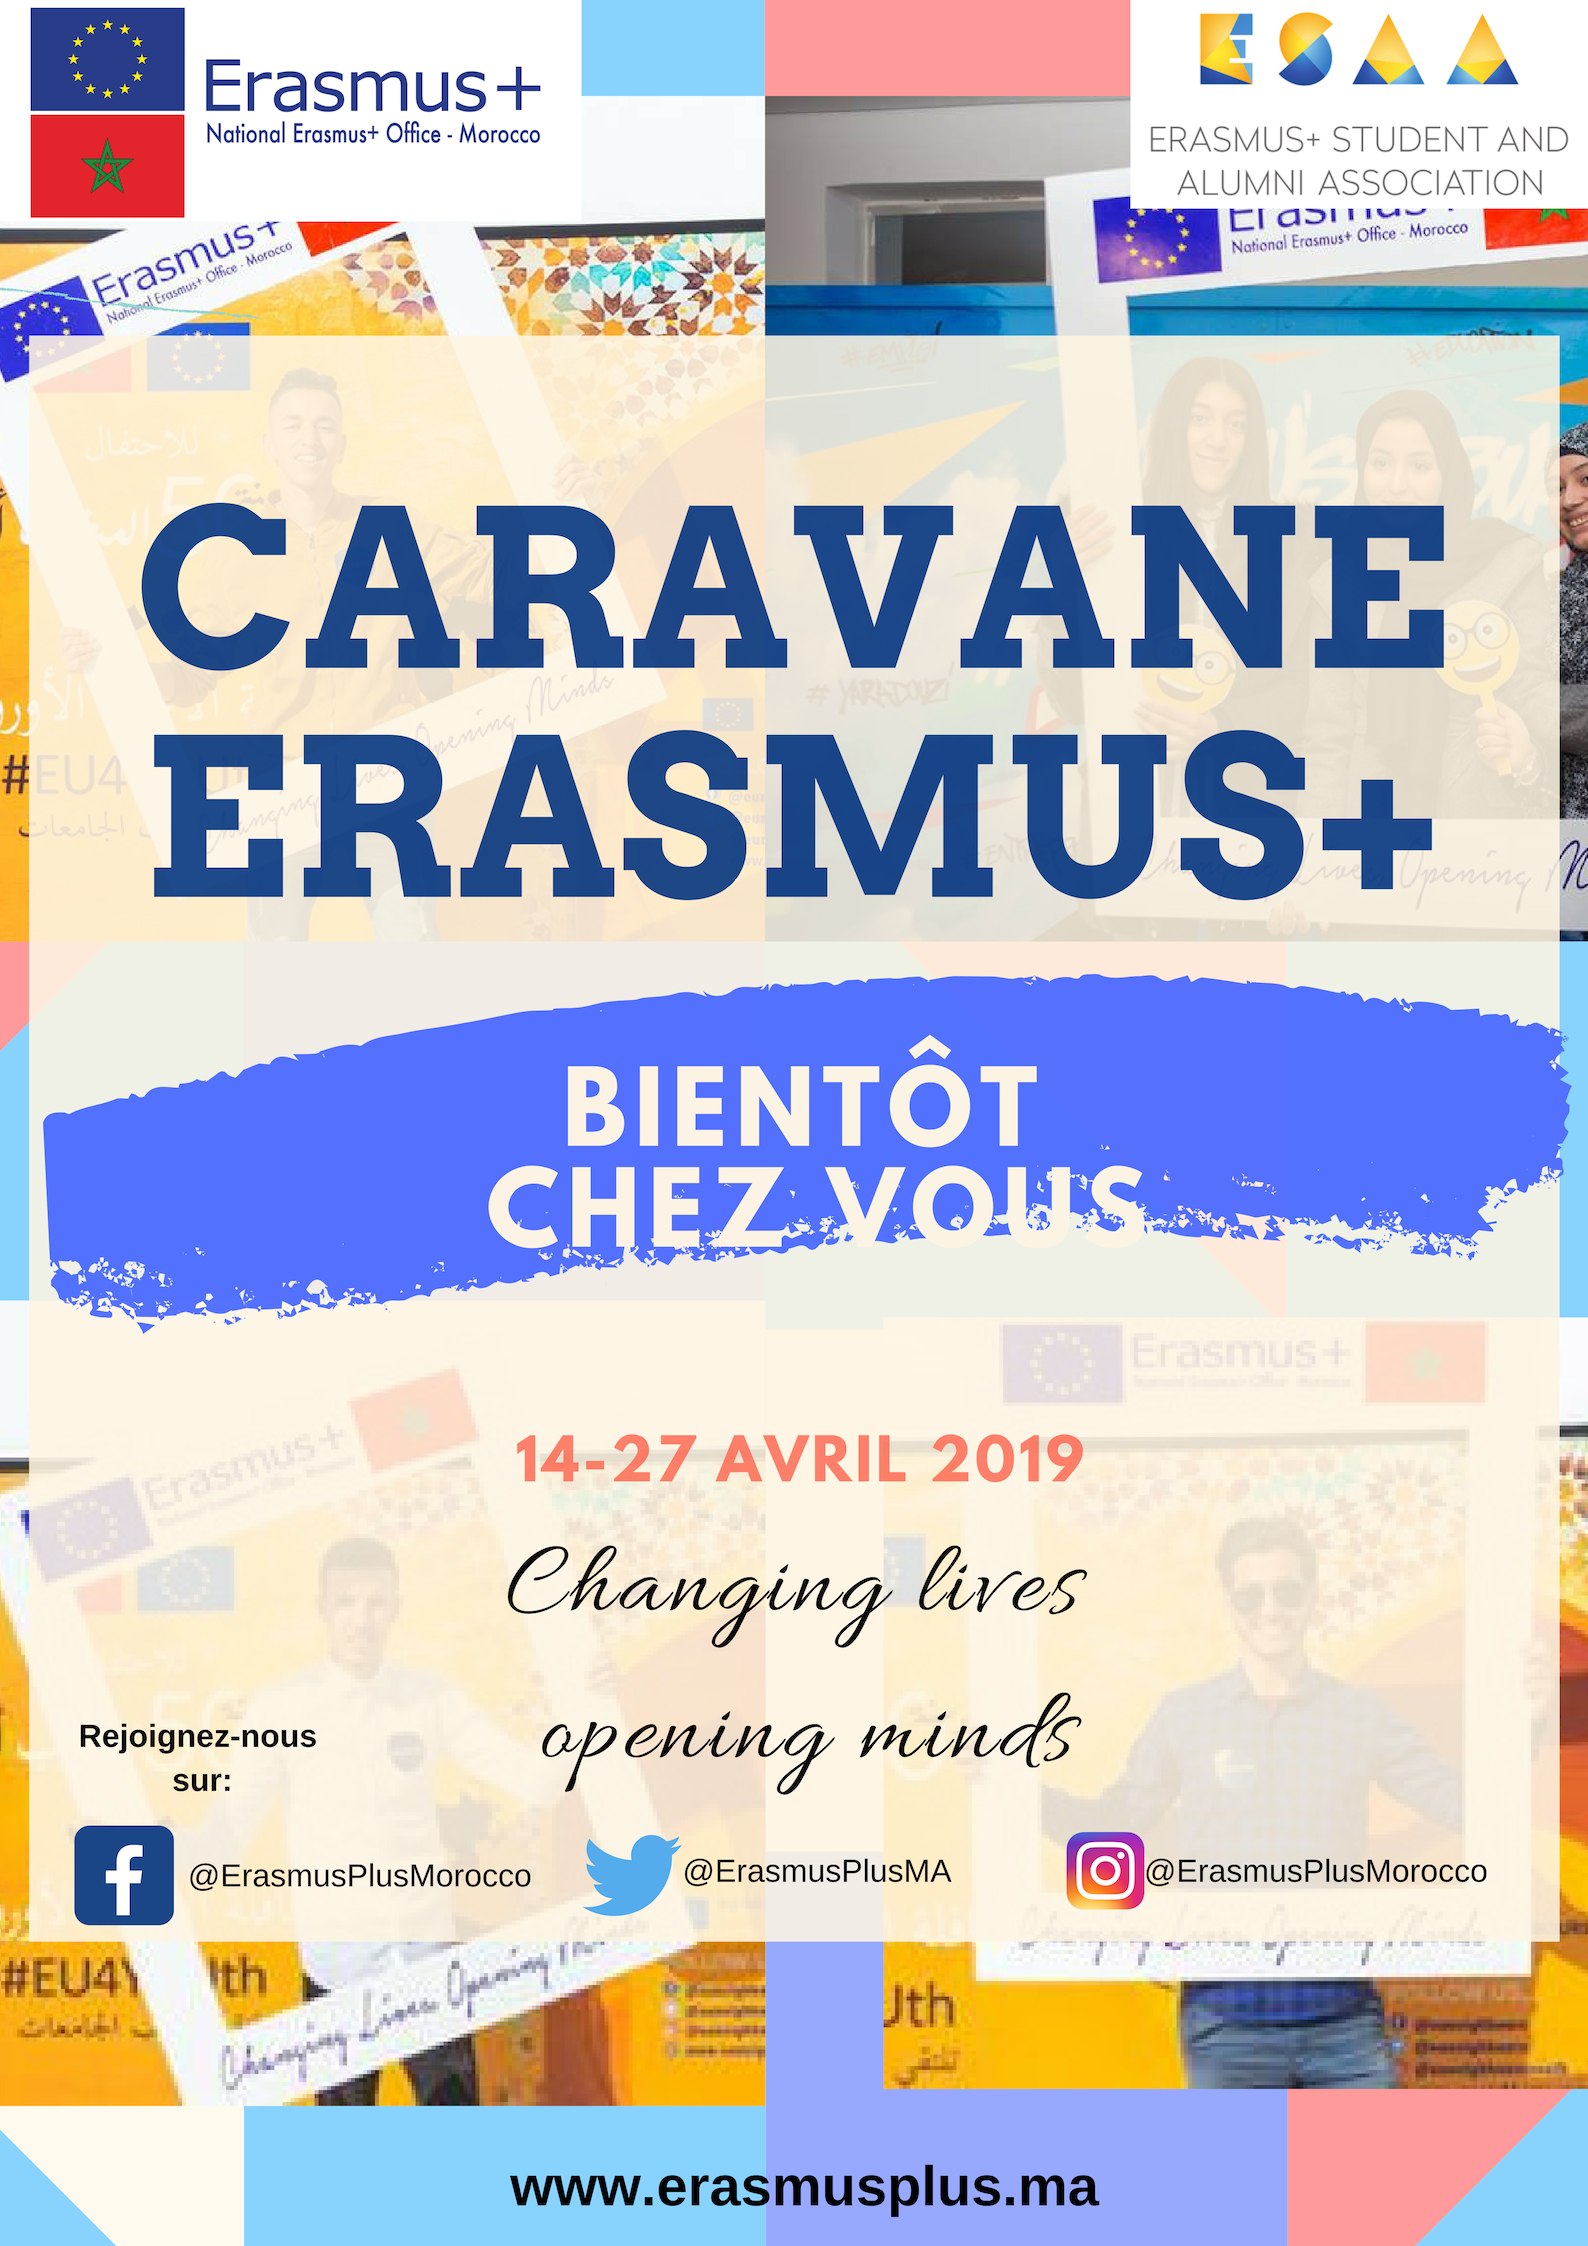 La caravane Erasmus+ : Changing lives, opening minds